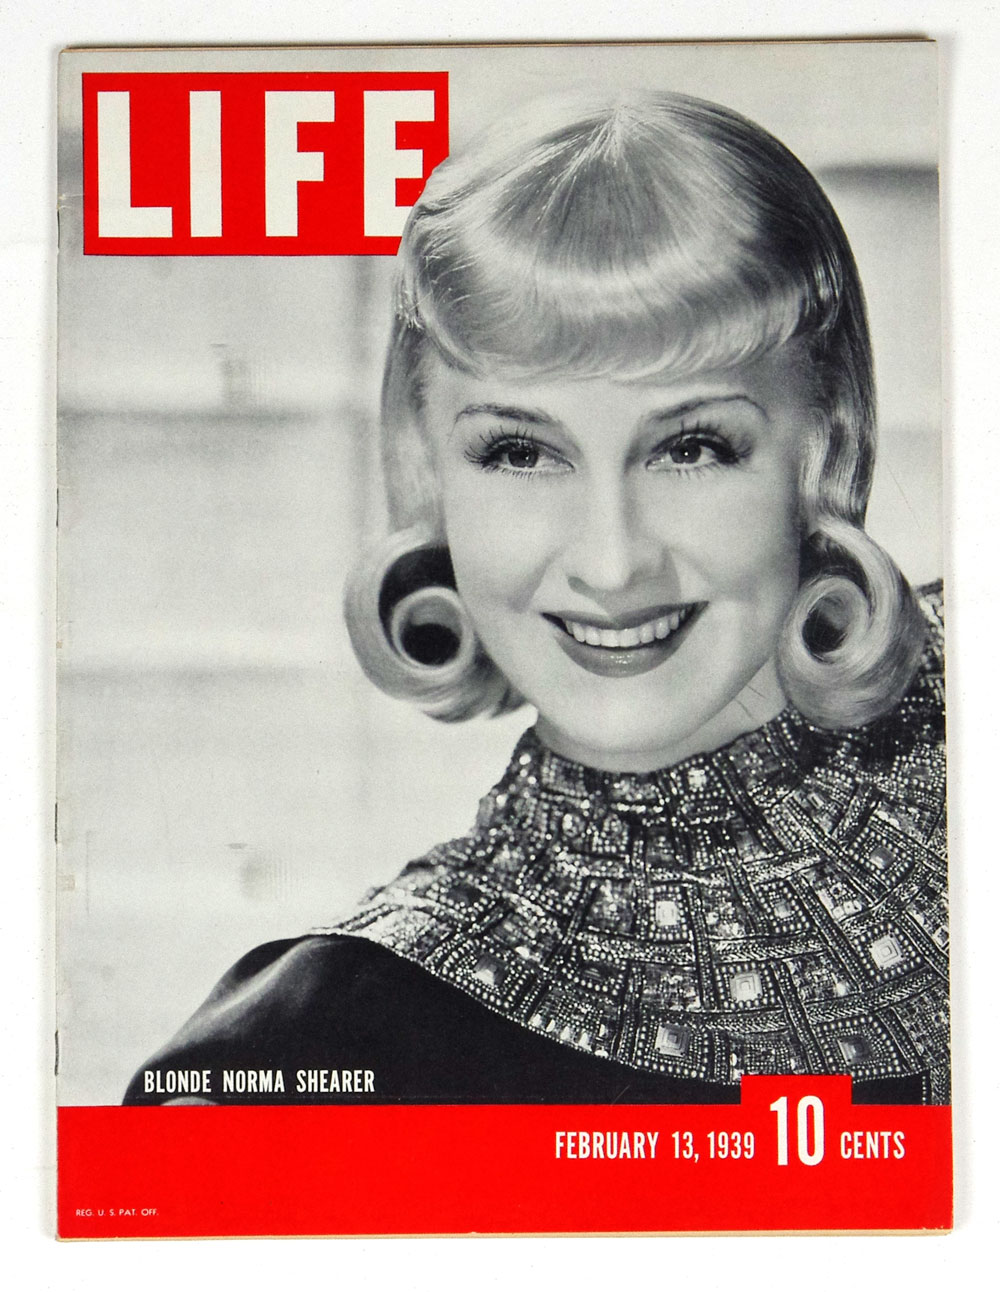 LIFE Magazine 1939 February 13 Blonde Norma Shearer